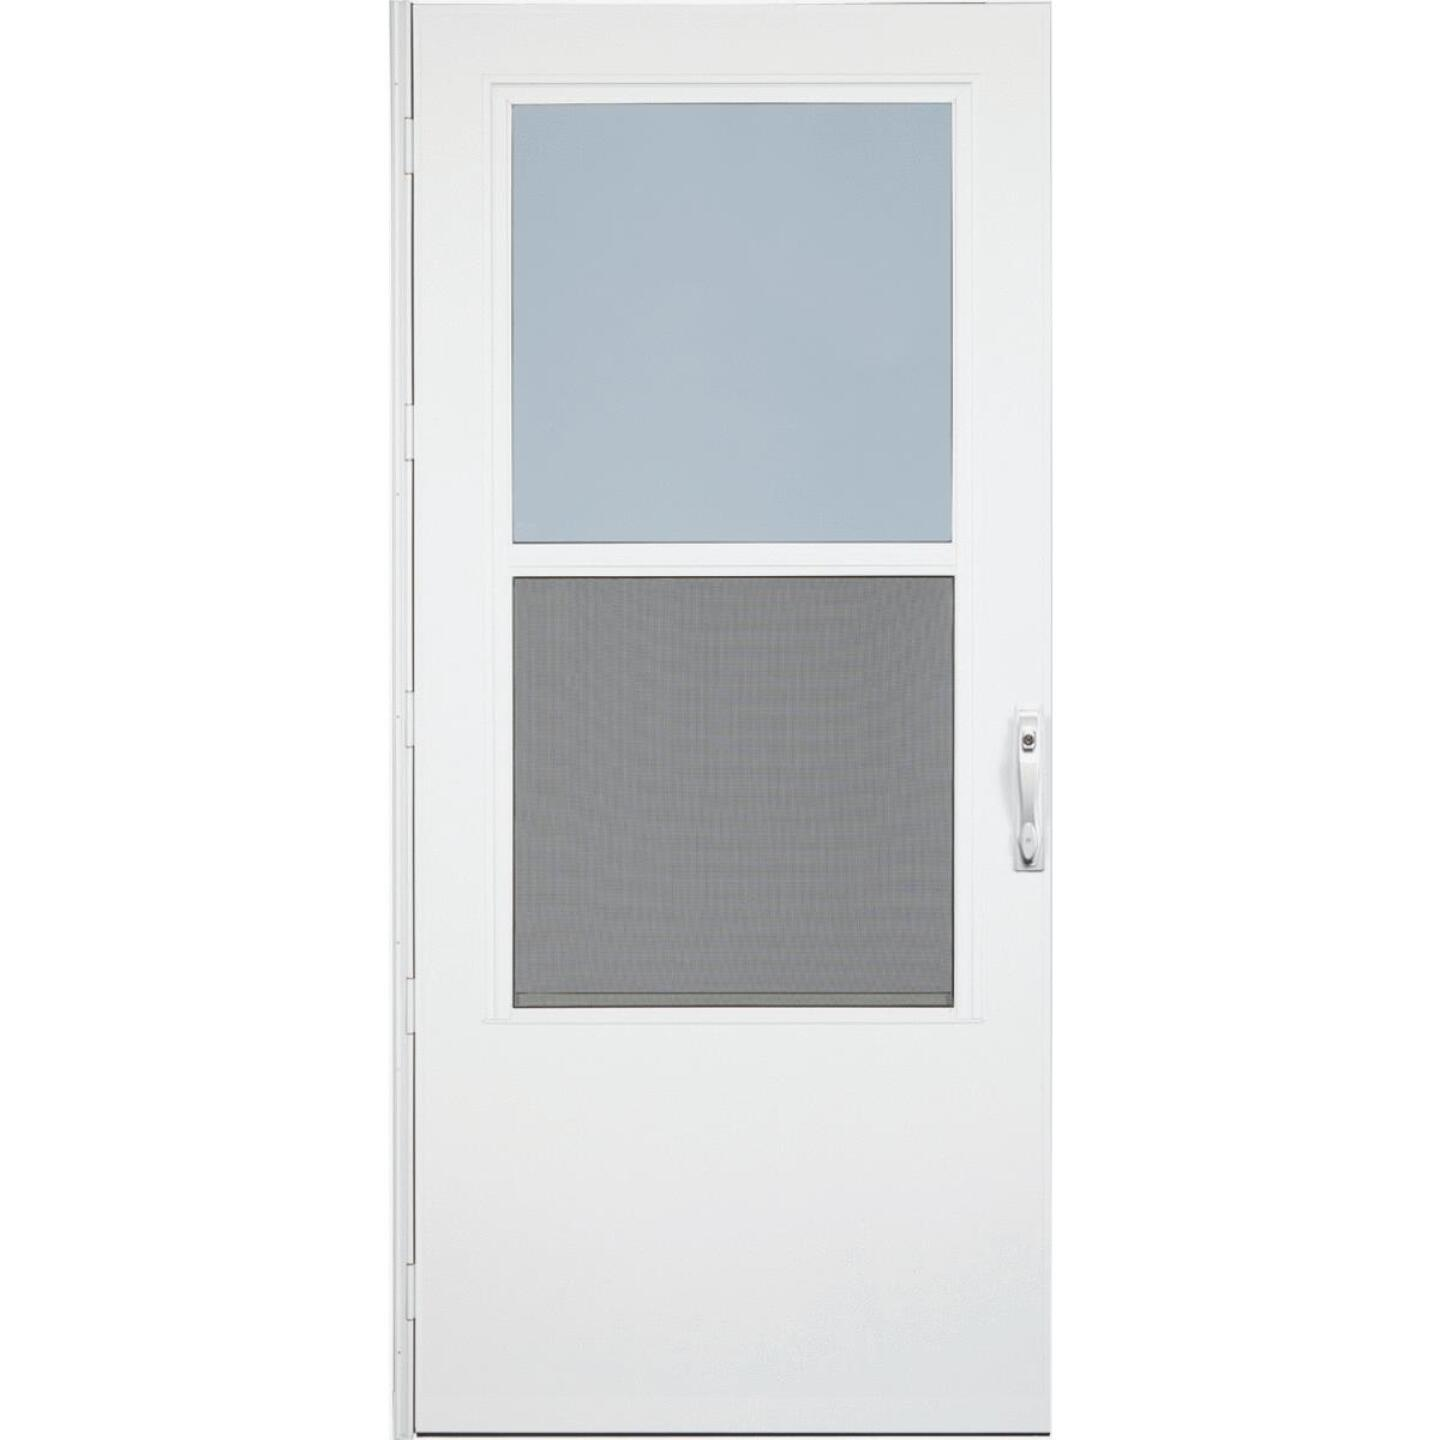 Larson Life-Core DuraTech 36 In. W. x 80 In. H. x 1 In. Thick White Self-Storing Storm Door Image 1